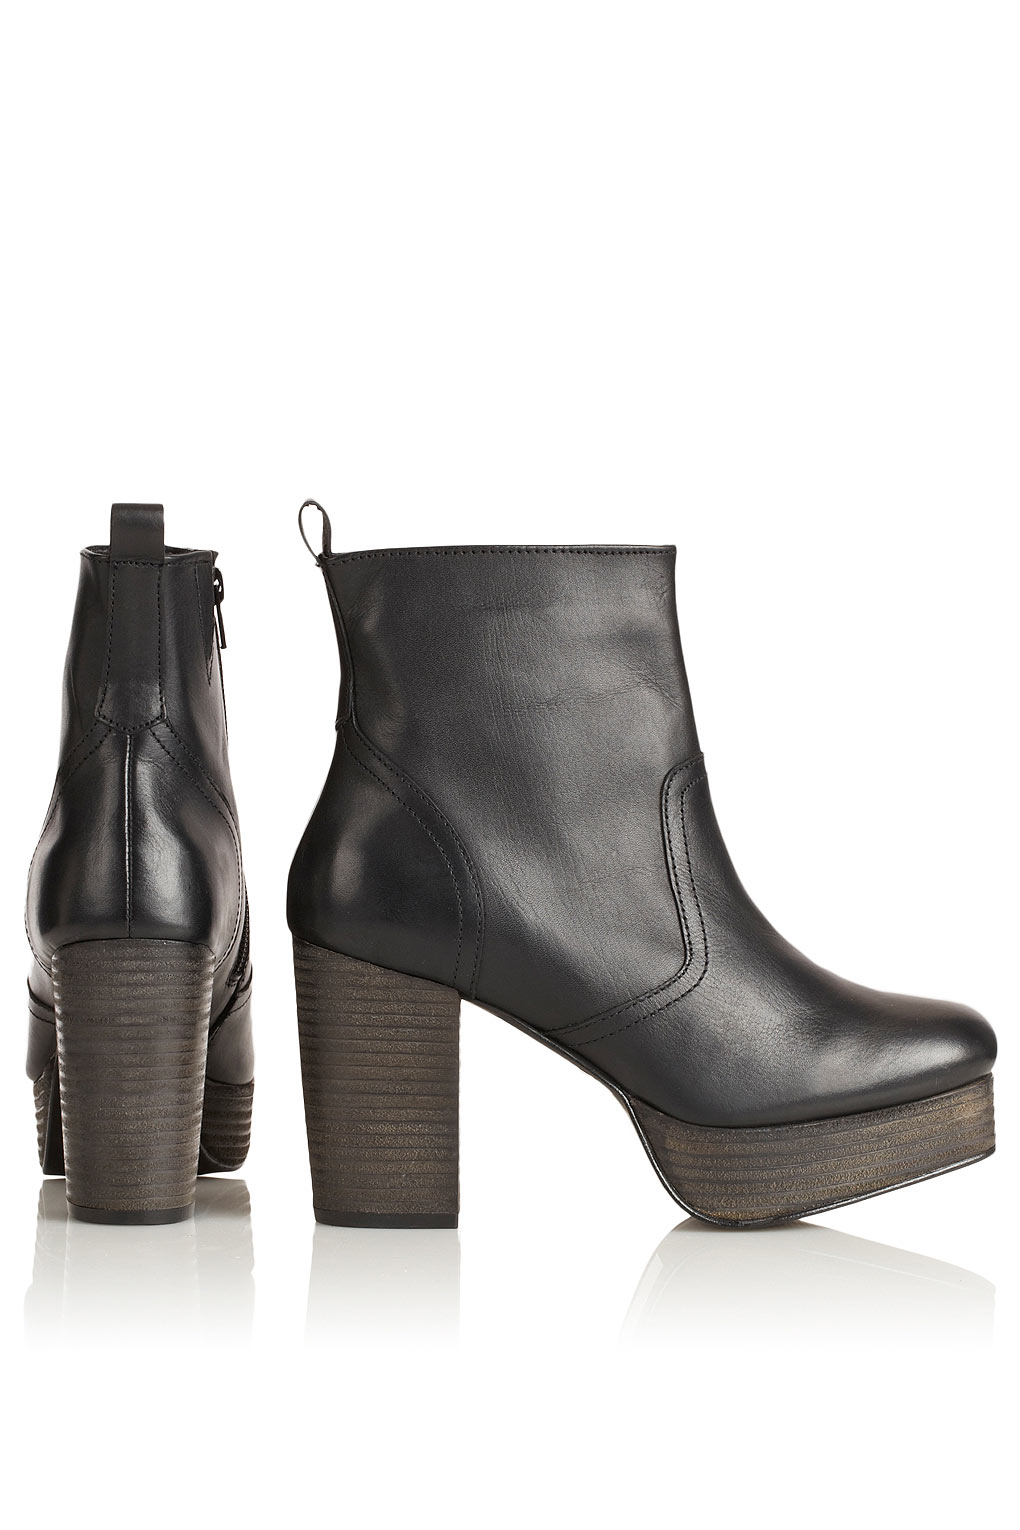 topshop aliyah 90s chunky ankle boots in black lyst